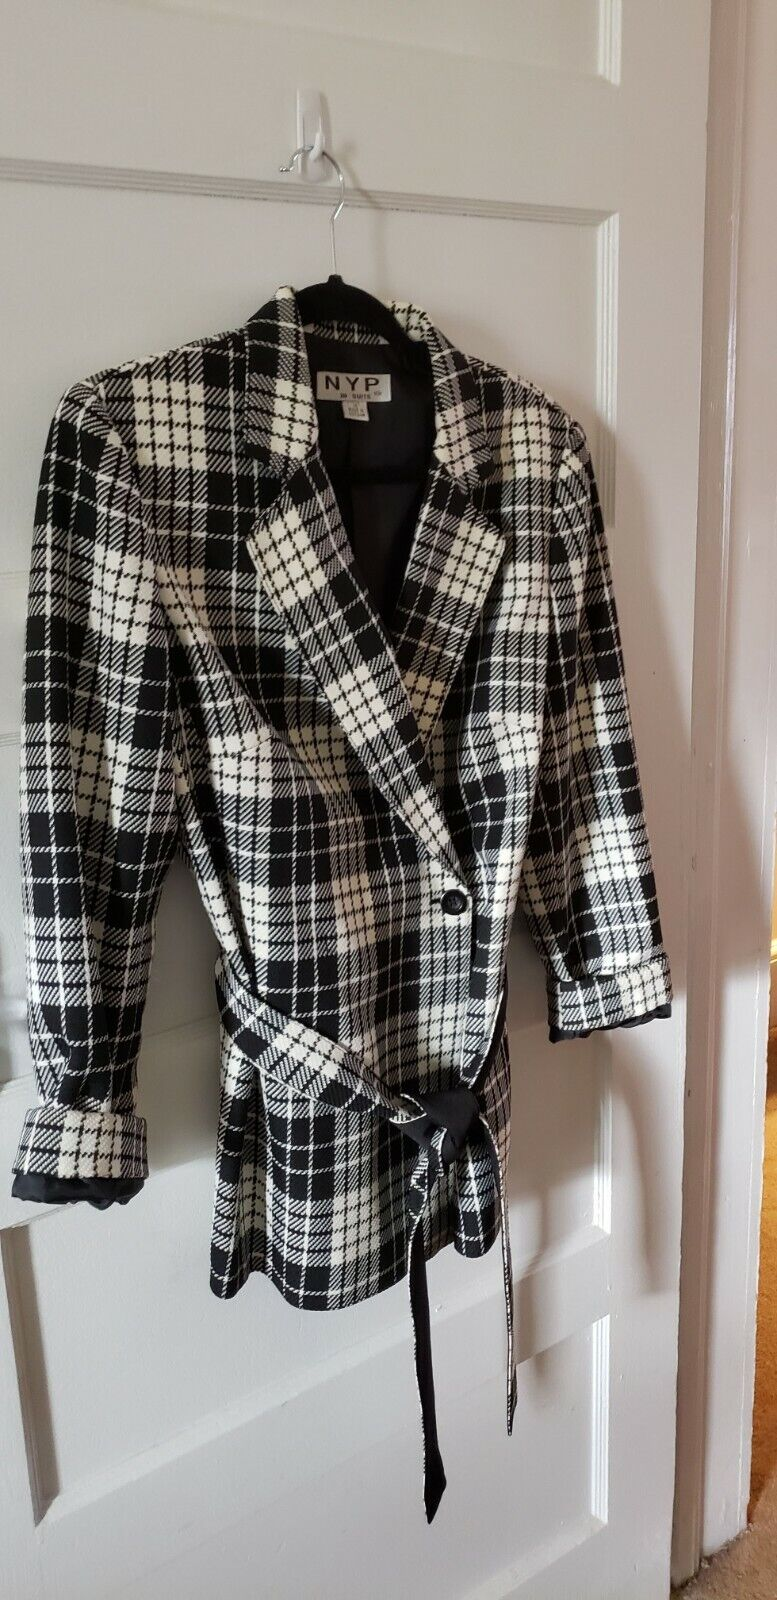 1970s White and Navy Plaid Suit with a Round Belt